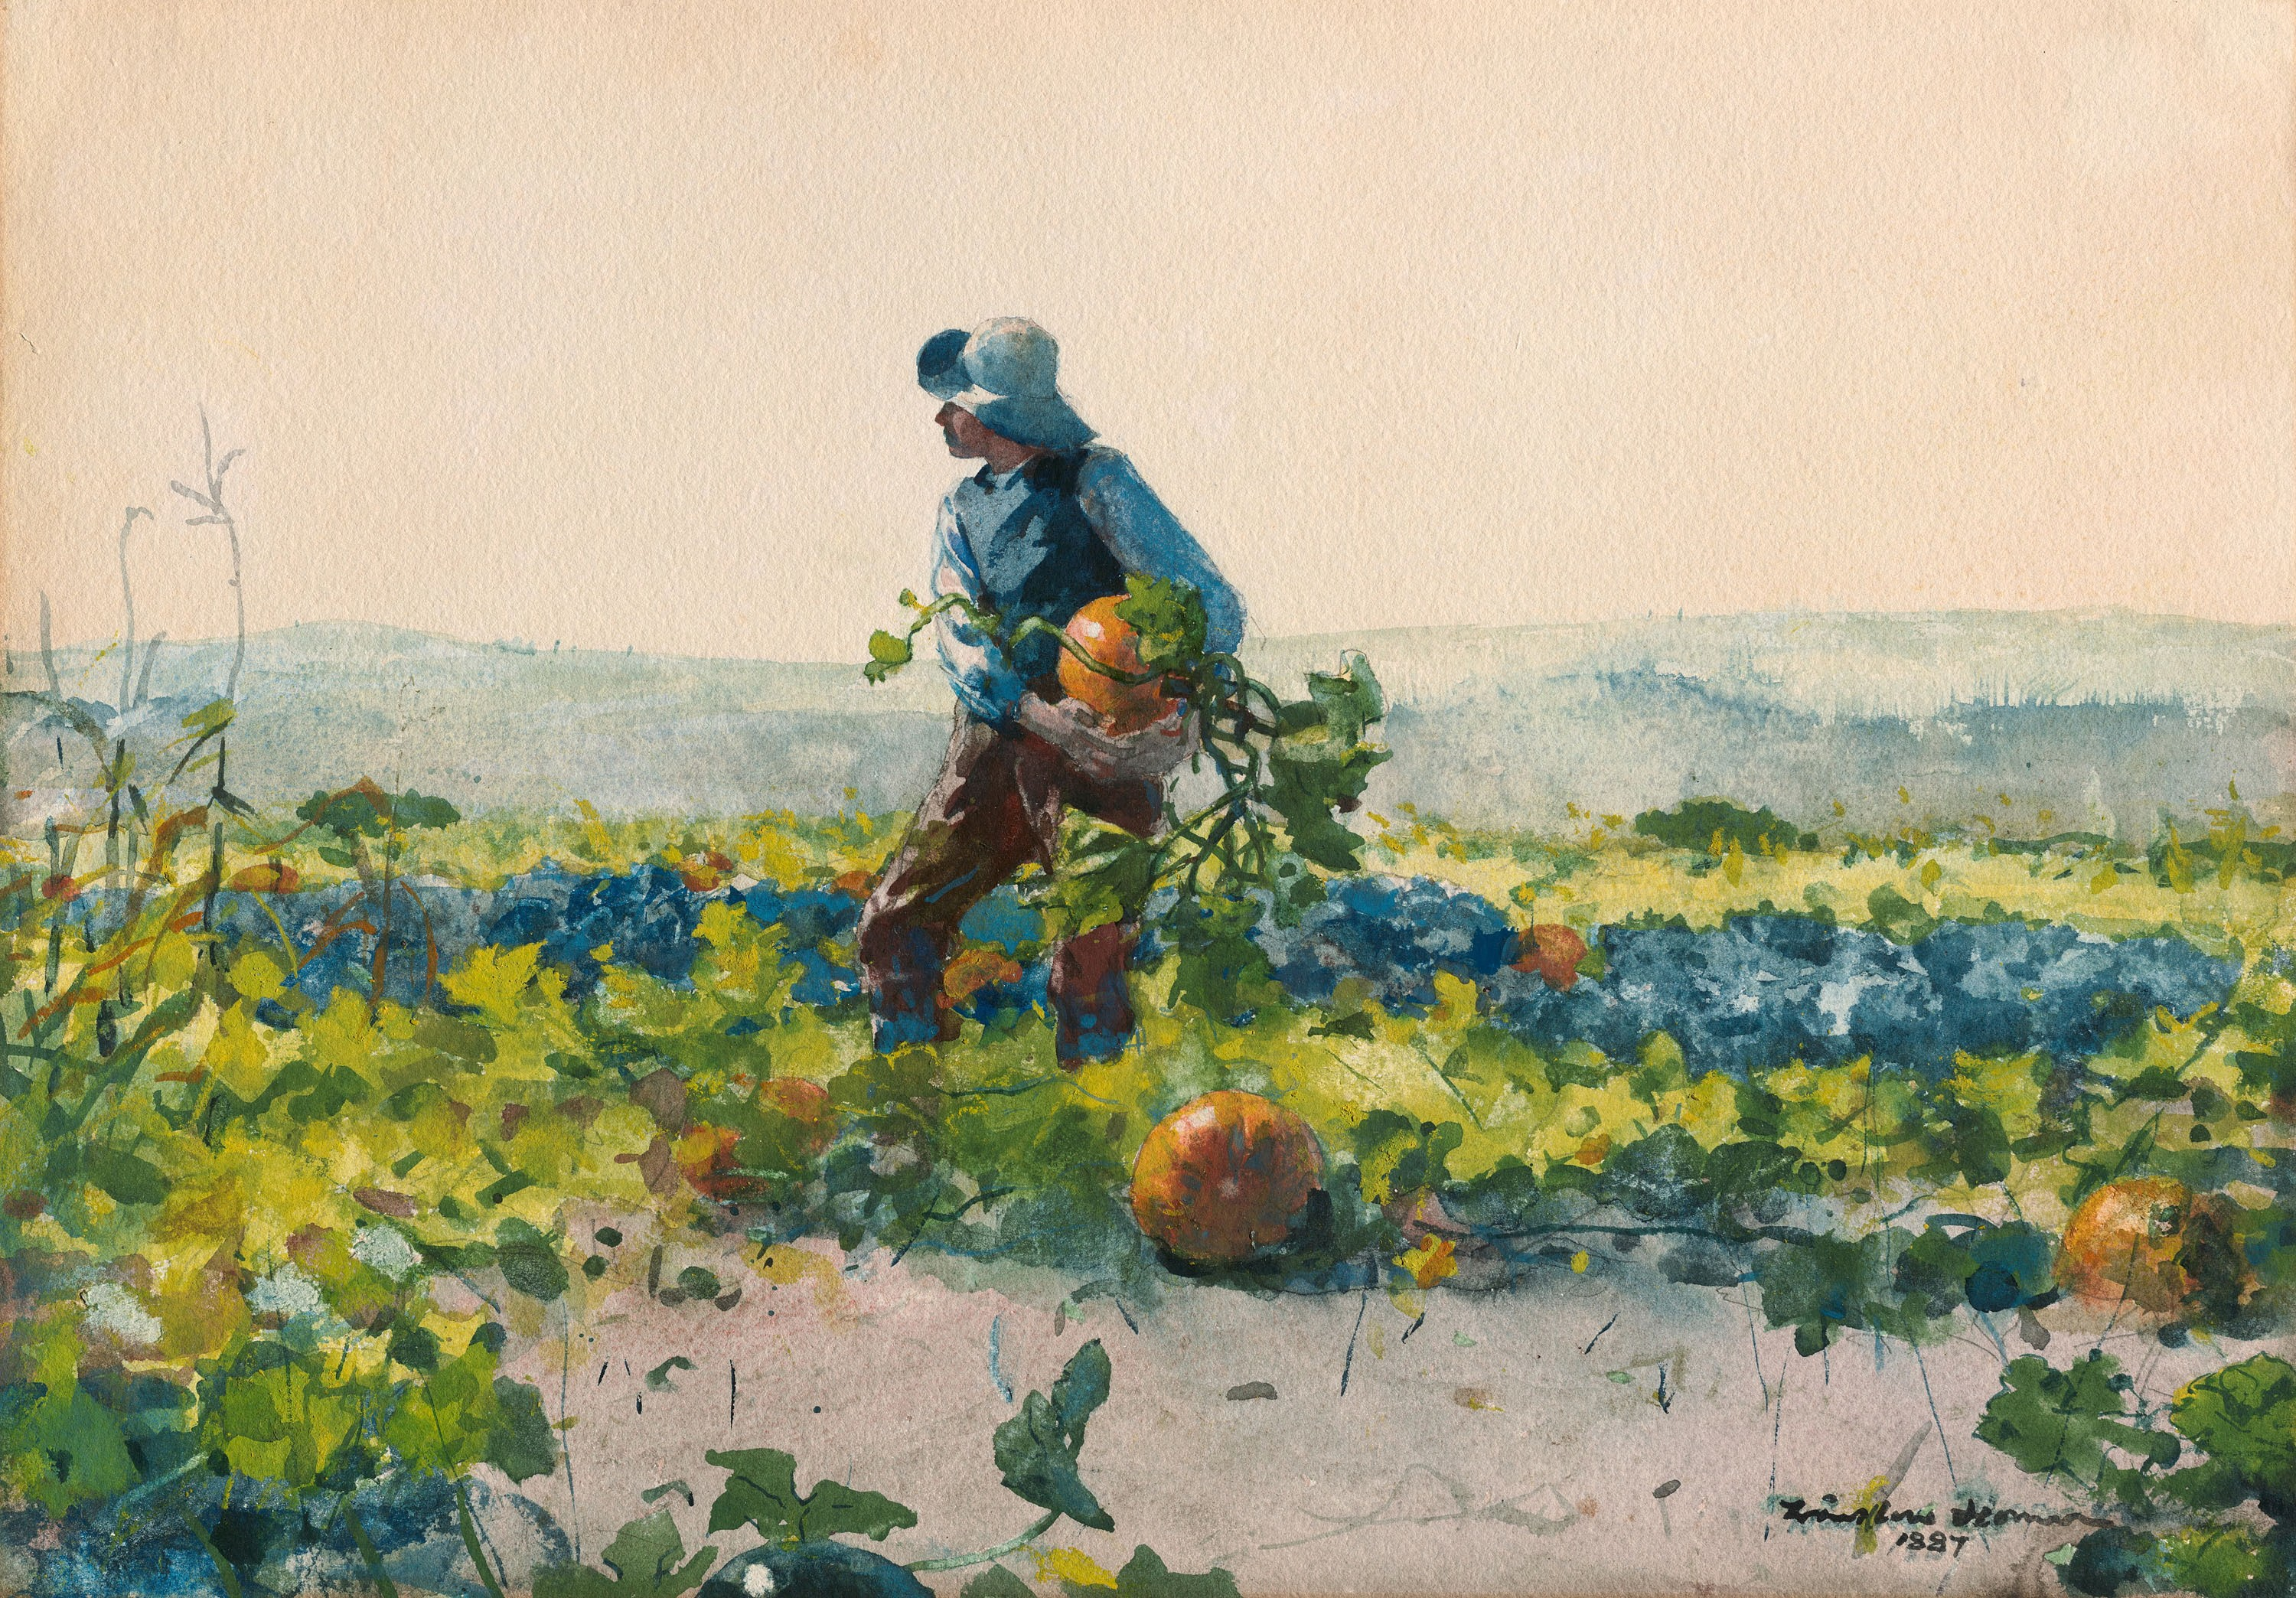 File:Winslow Homer - For to Be a Farmer's Boy.jpg - Wikimedia Commons